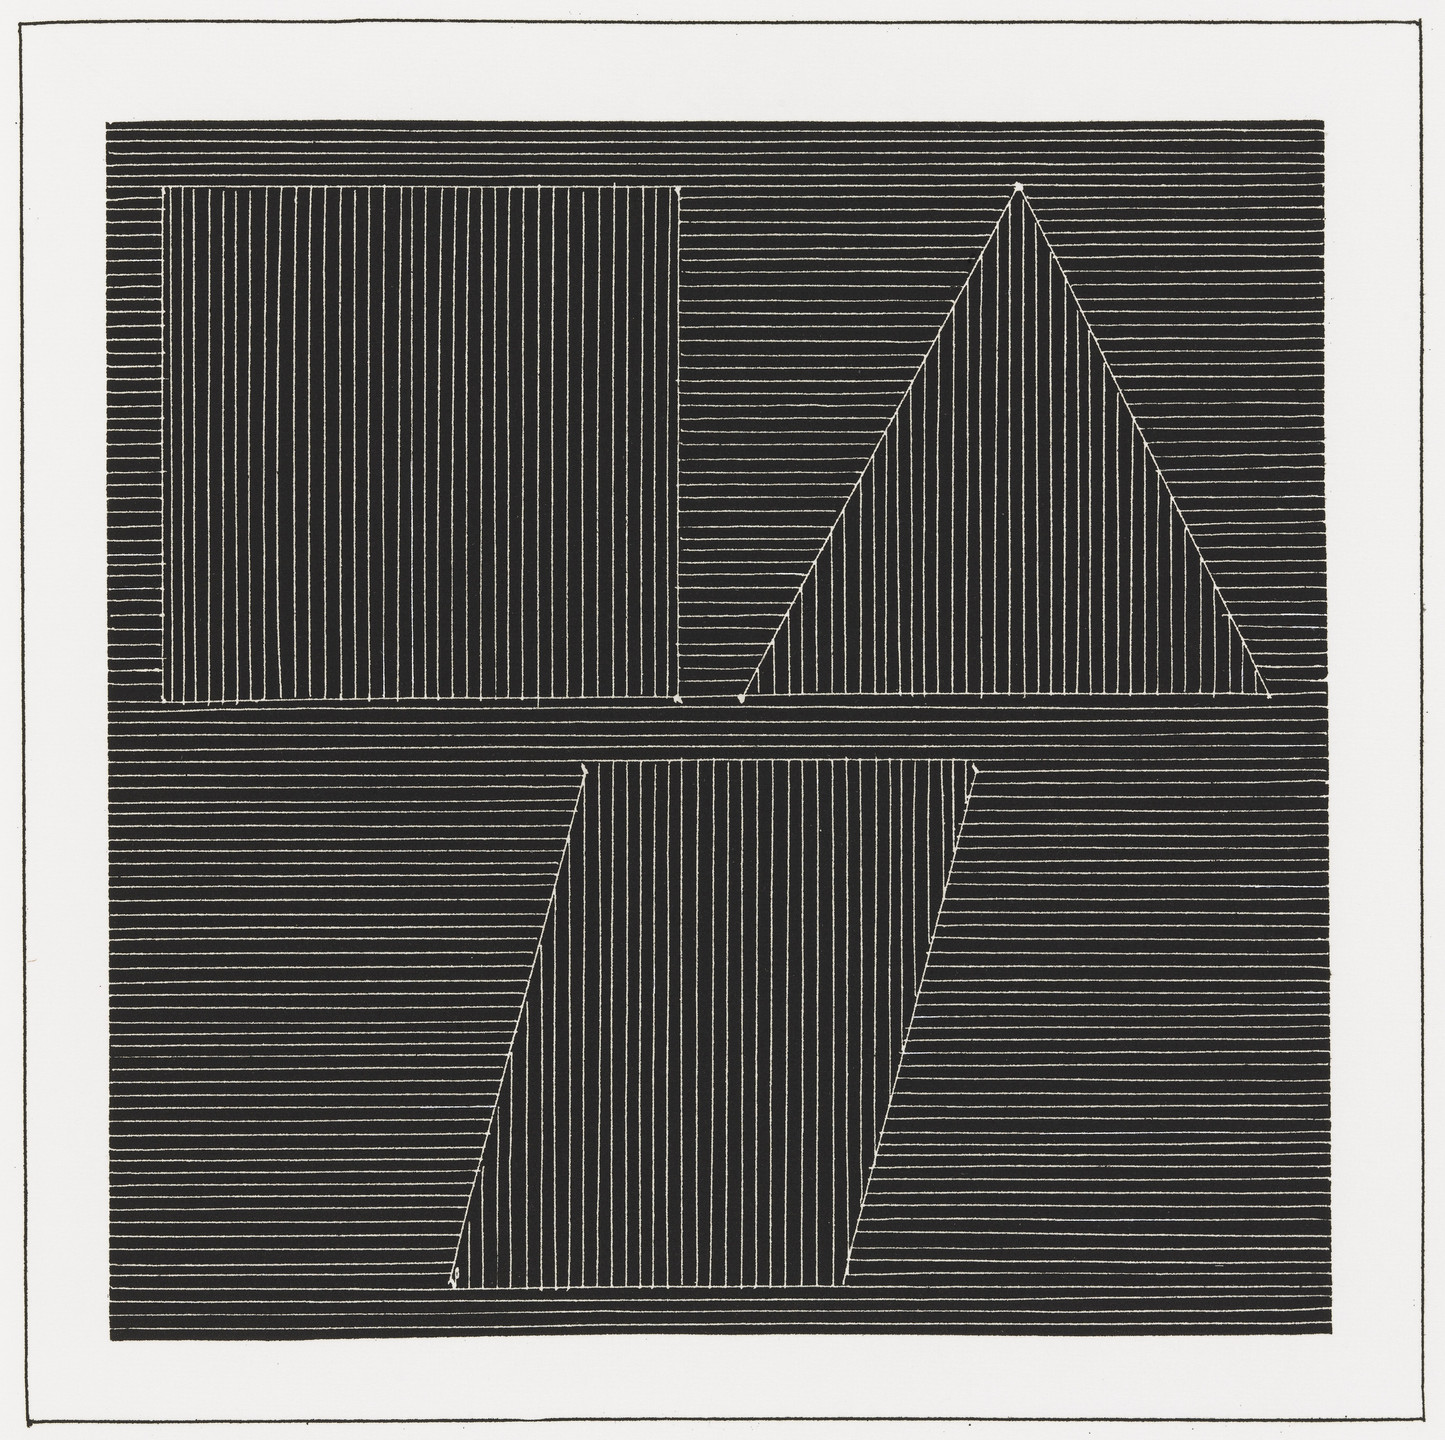 Sol LeWitt. Plate (folio 29) from Six Geometric Figures and All Their Combinations, Volume I. 1980